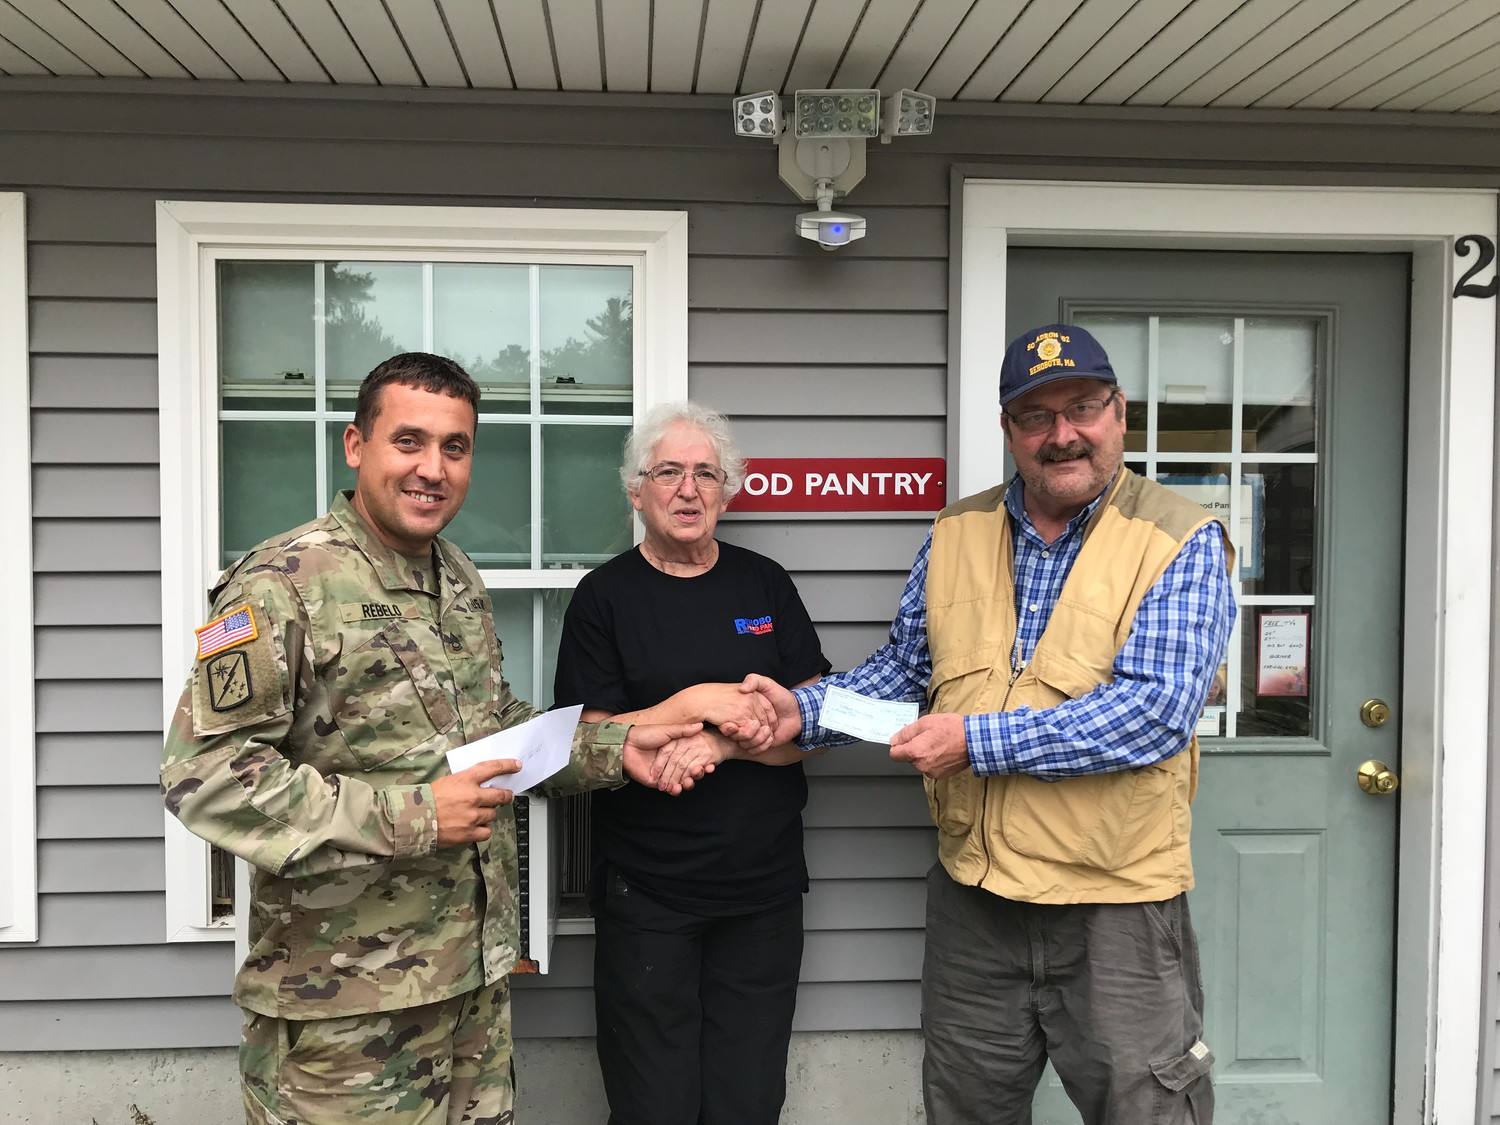 On the left, Luis Rebelo, Commander of the American Legion Post 302 along with the Commander of the Sons on the right, Mark Hass handing checks to the Rehoboth Food Pantry.